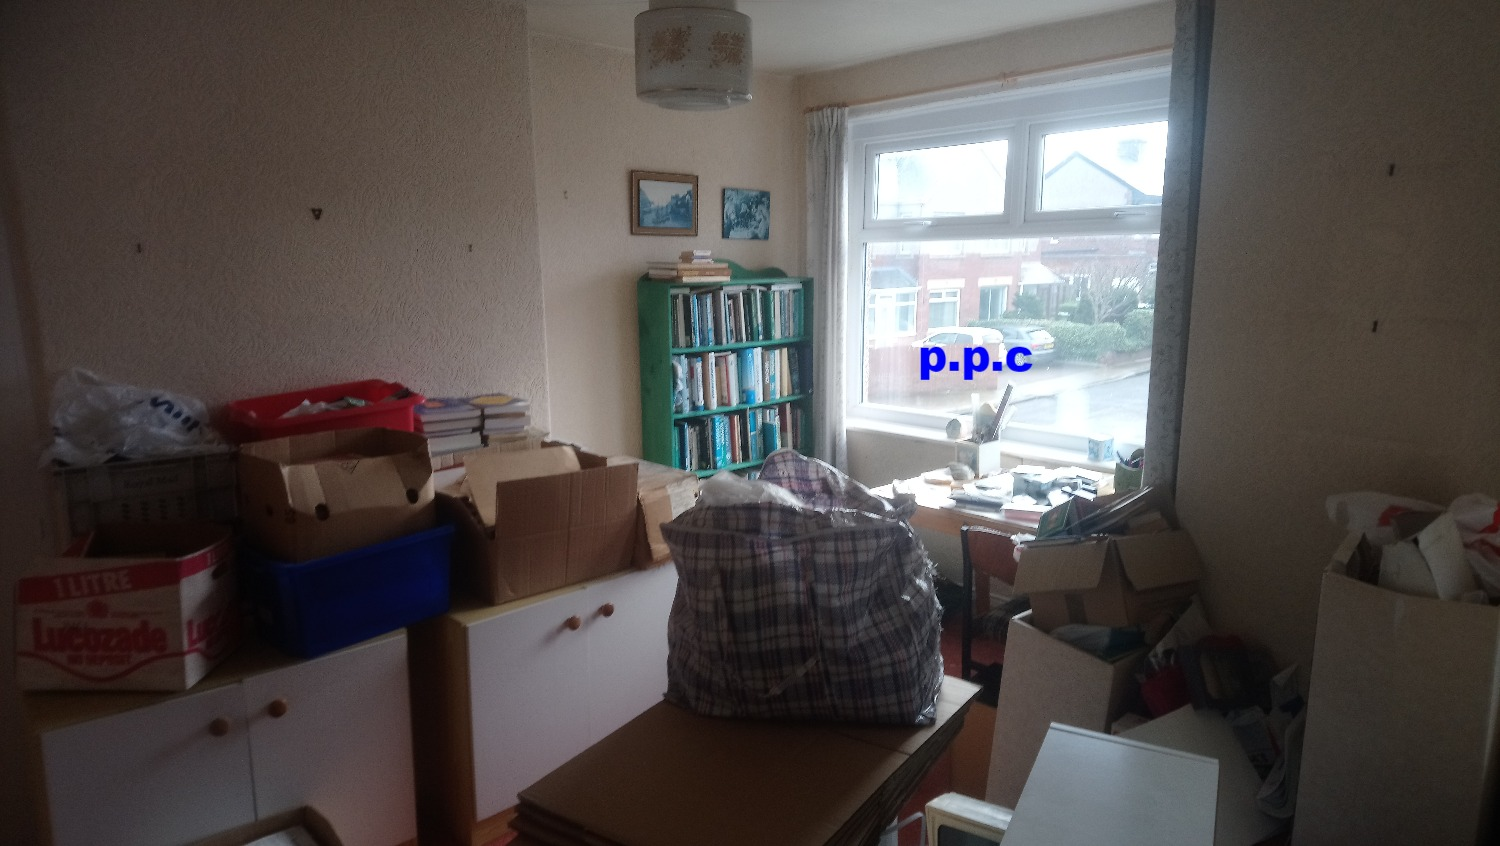 House clearance in fulwell pic 7